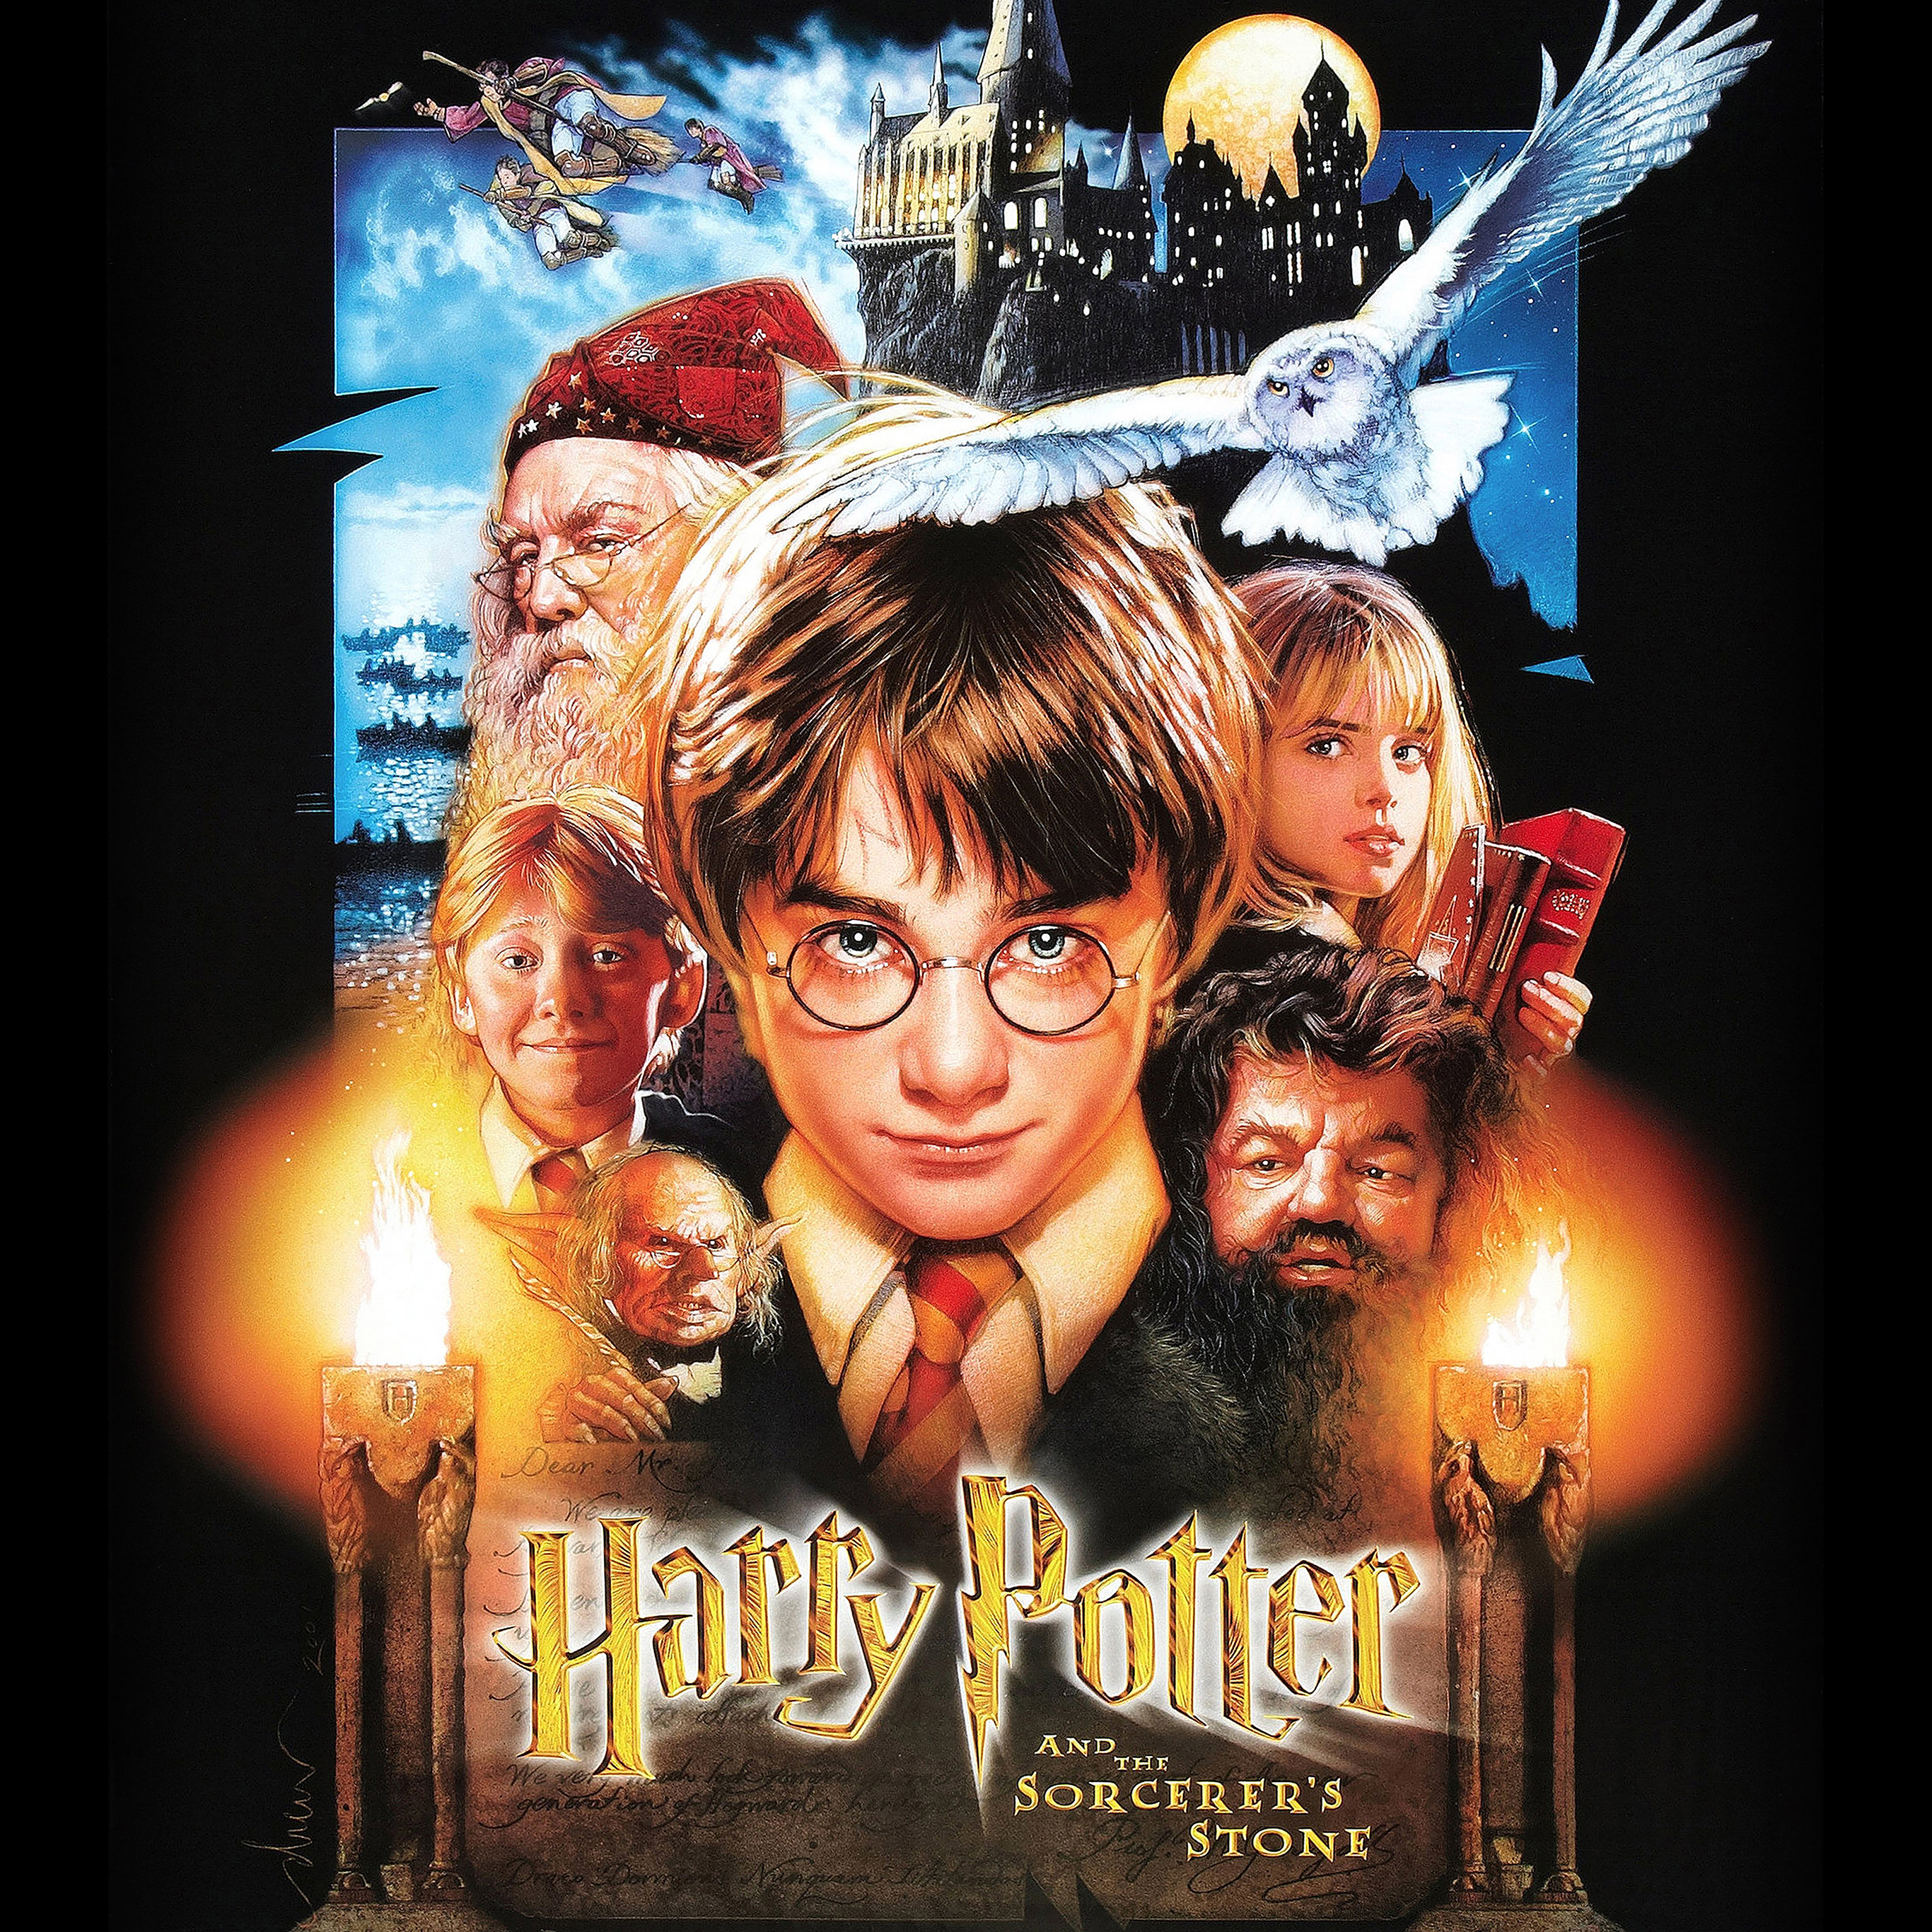 Androidpapersco Ab62 Wallpaper Harry Potter Poster